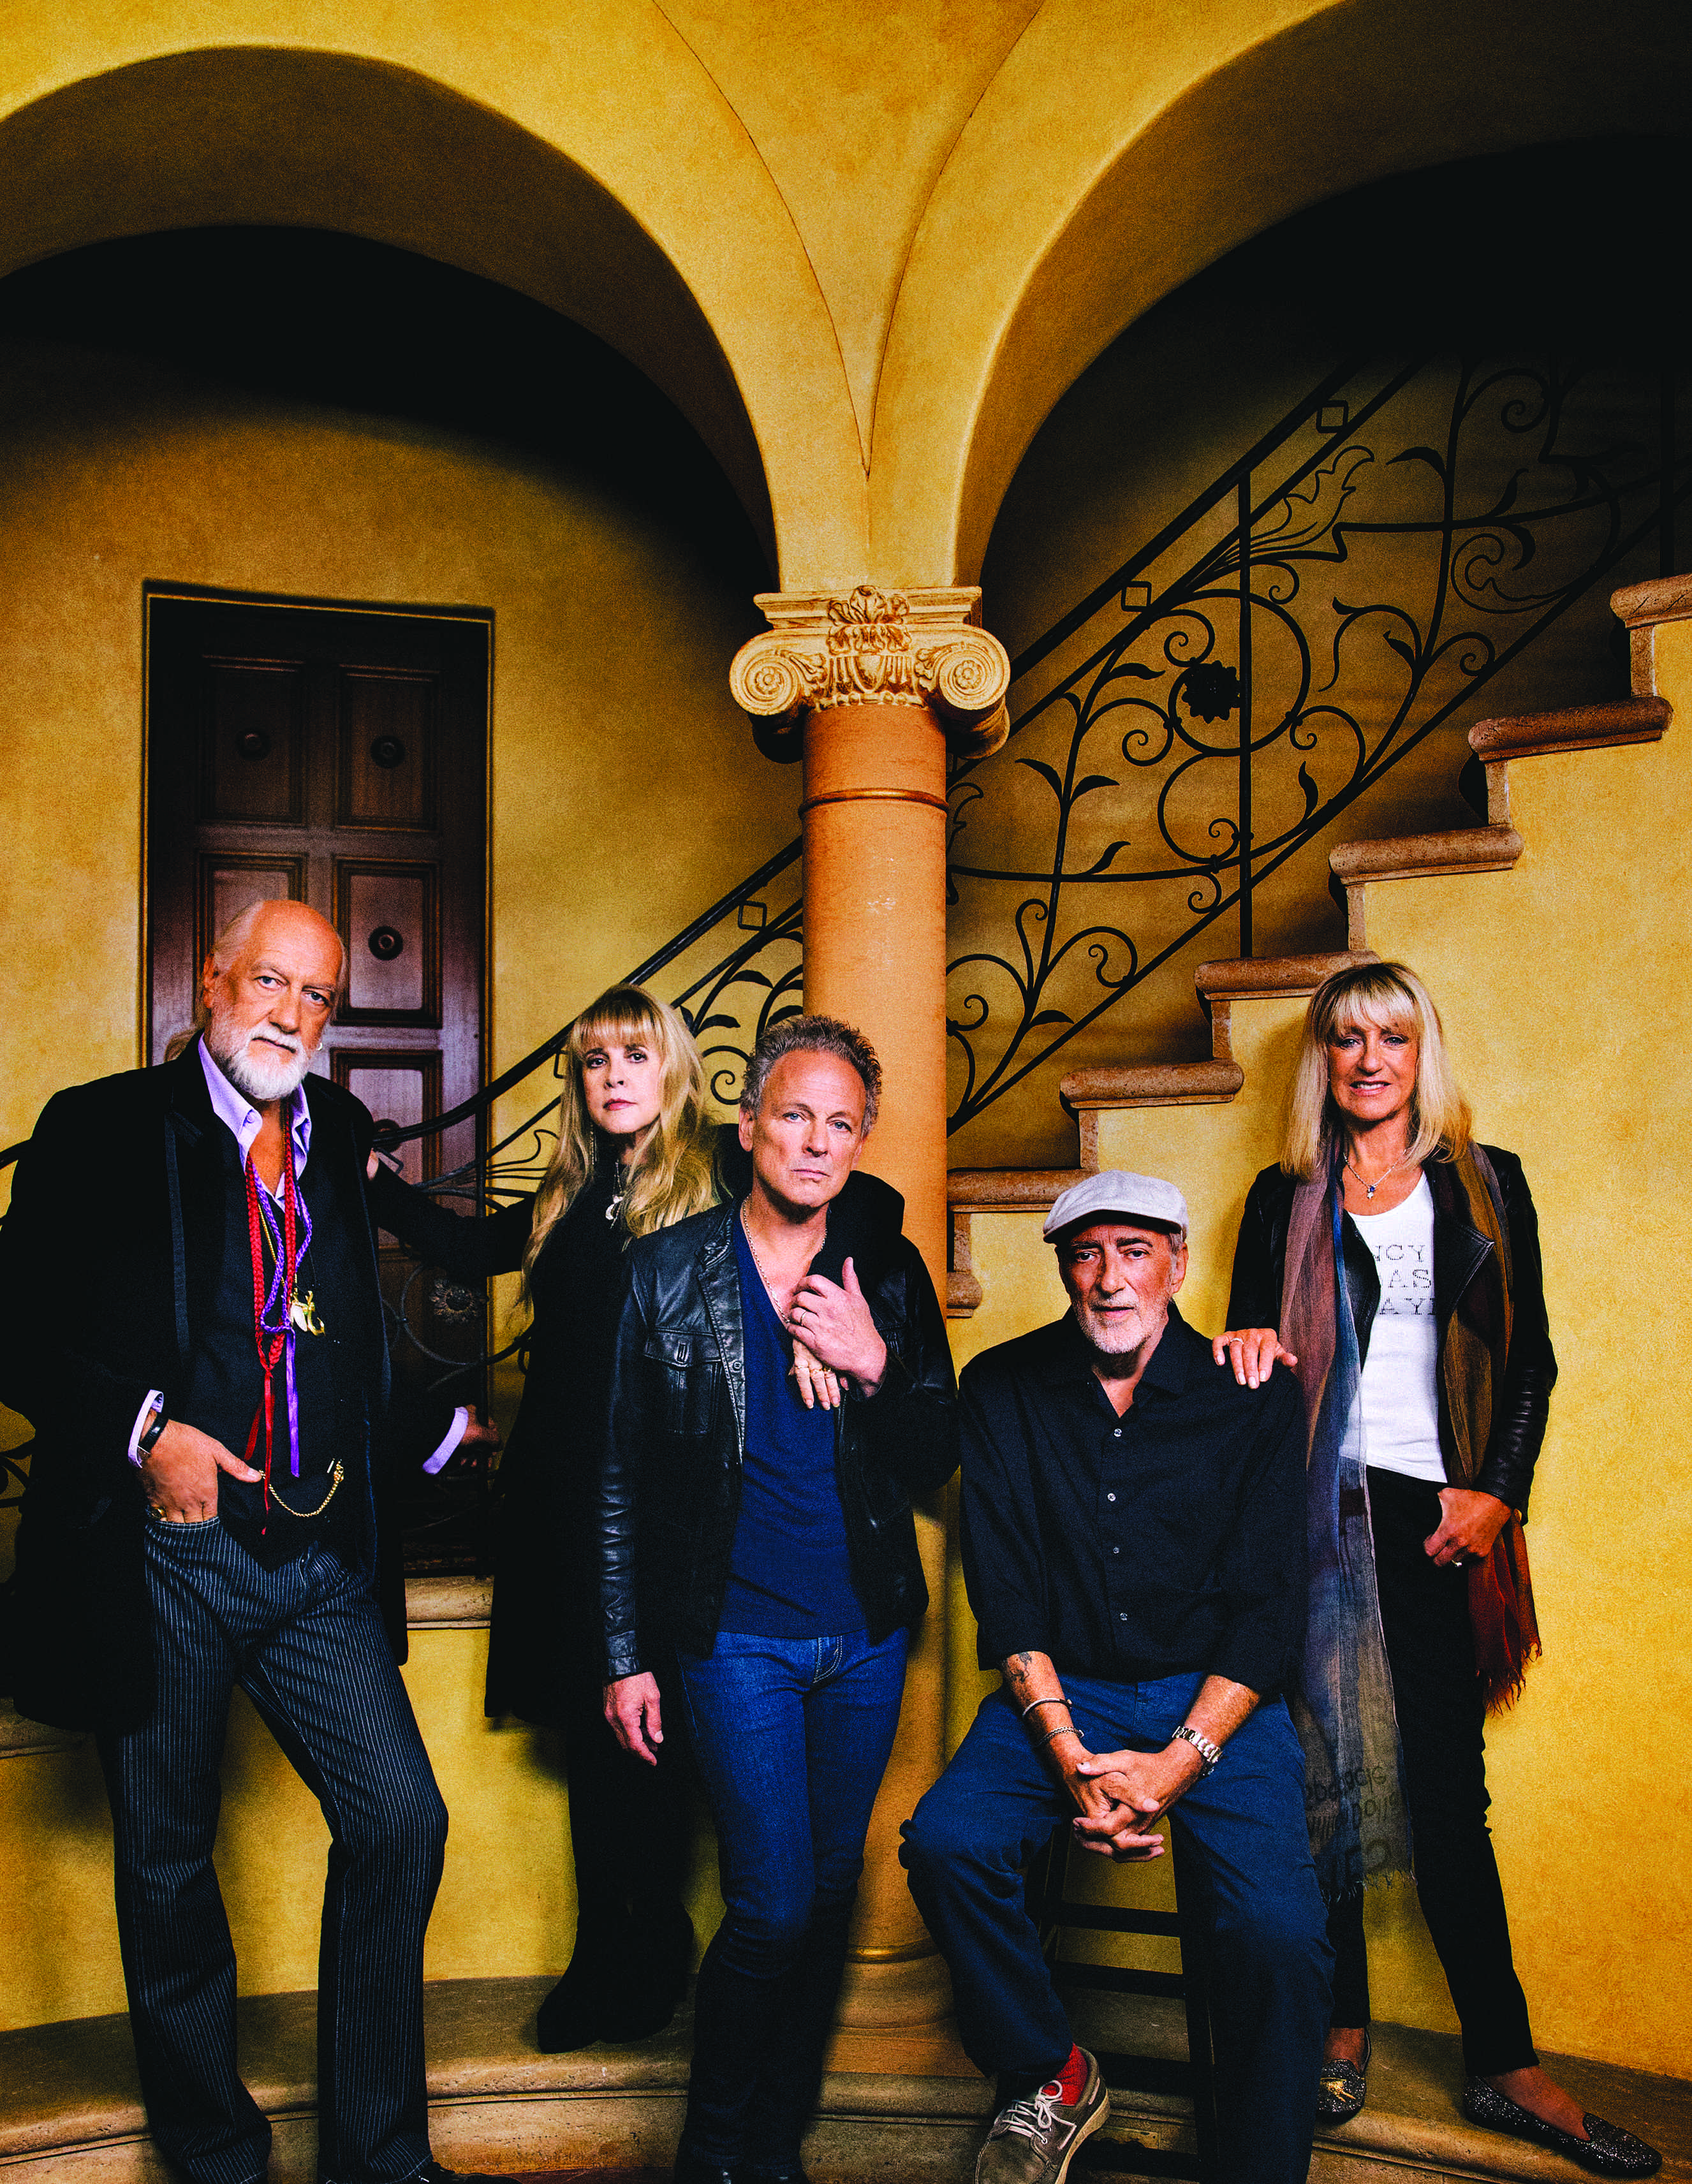 Fleetwood Mac confirmed as first headliners for Isle Of Wight Festival 2015